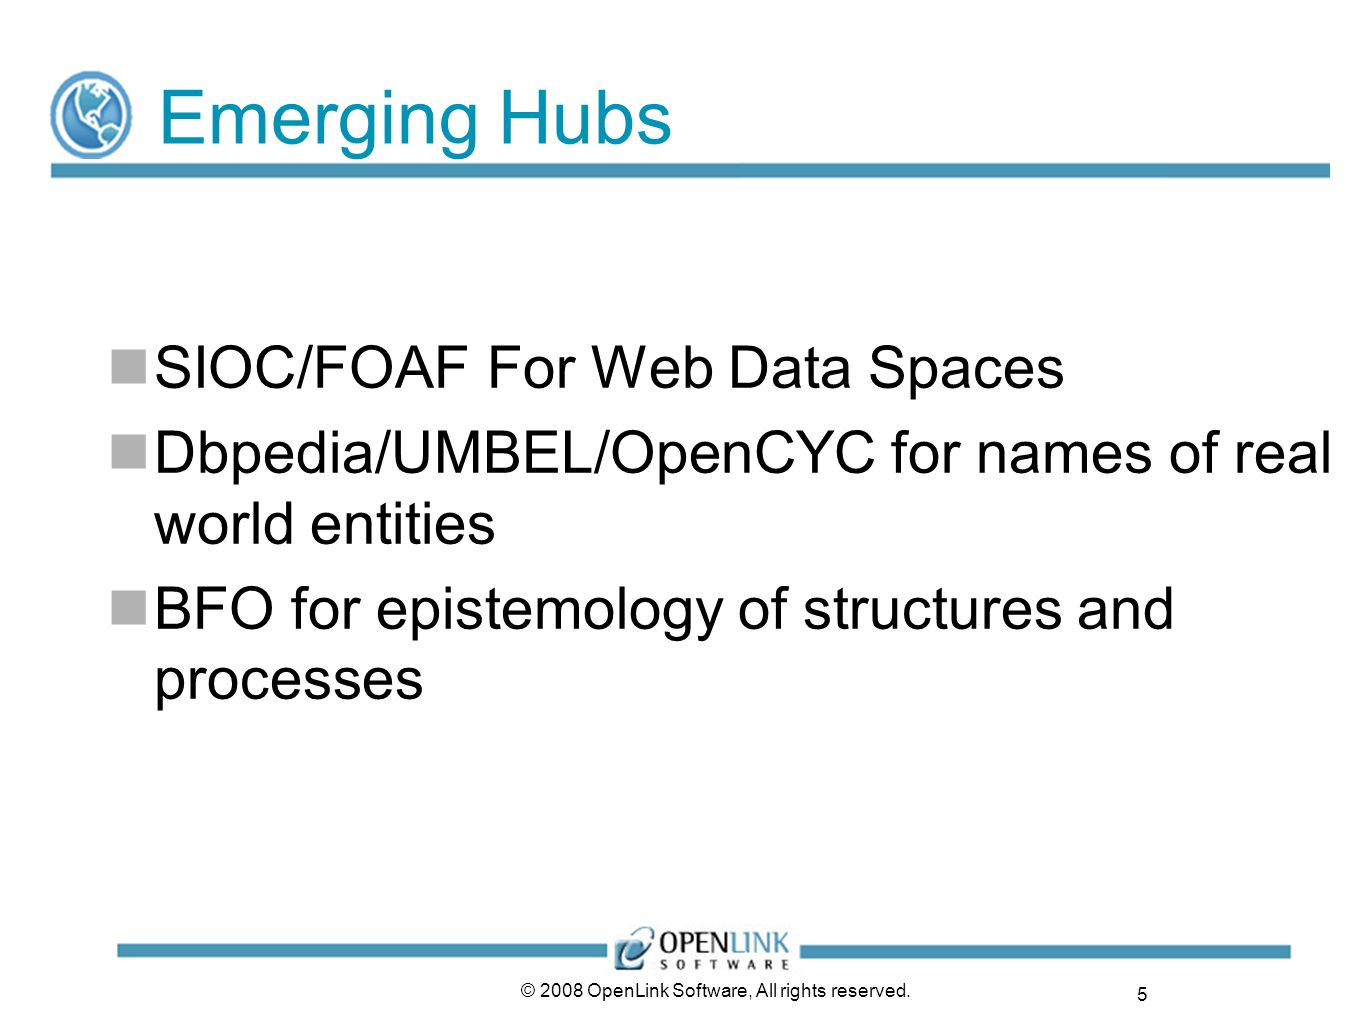 5 © 2008 OpenLink Software, All rights reserved. Emerging Hubs SIOC/FOAF For Web Data Spaces Dbpedia/UMBEL/OpenCYC for names of real world entities BF